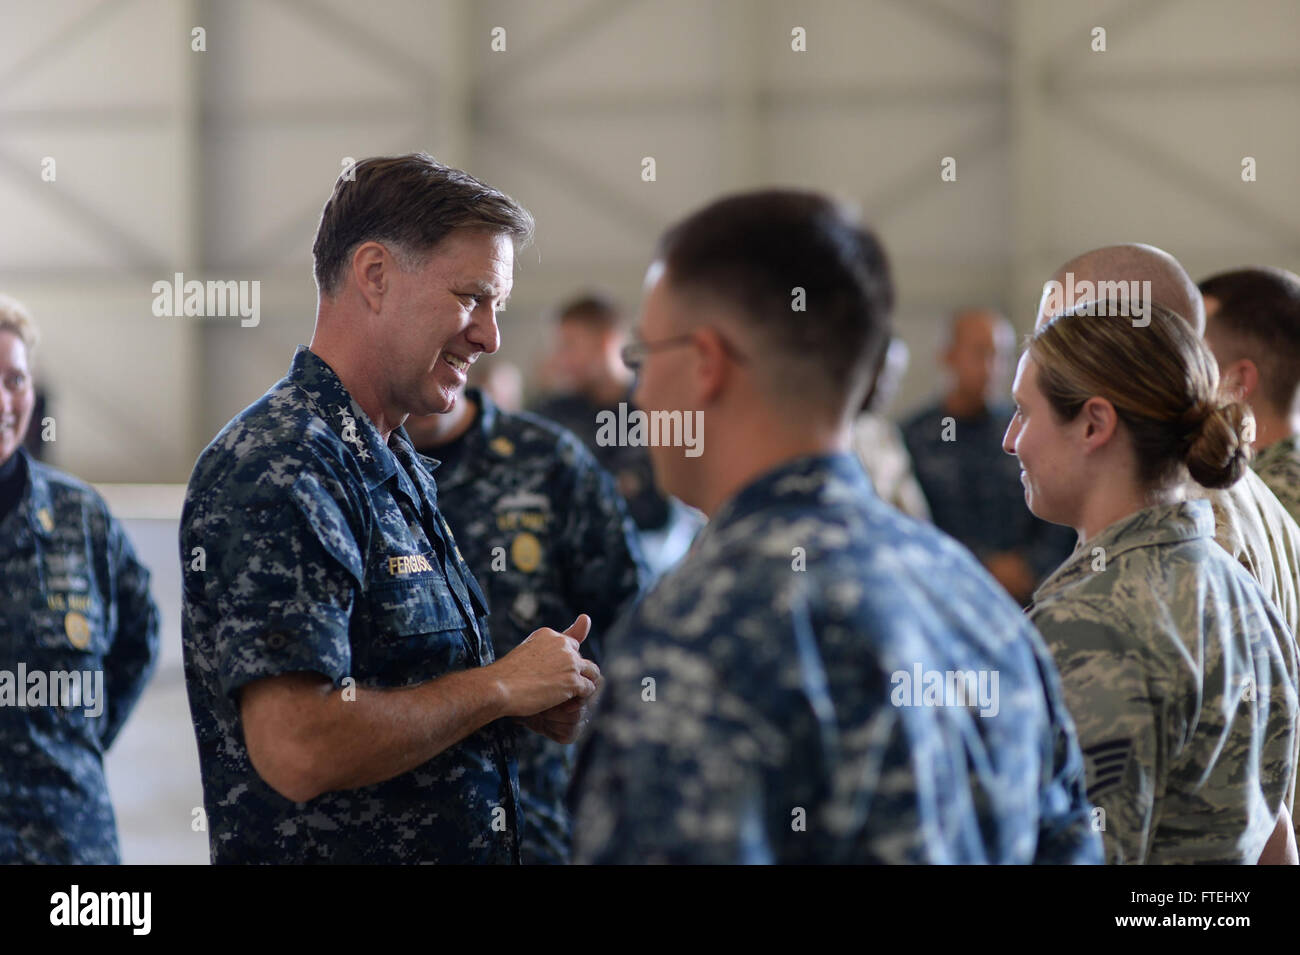 SIGONELLA, Sicily (Oct. 29, 2014) Adm. Mark Ferguson, commander of U.S. Naval Forces Europe-Africa, speaks to an - Stock Image